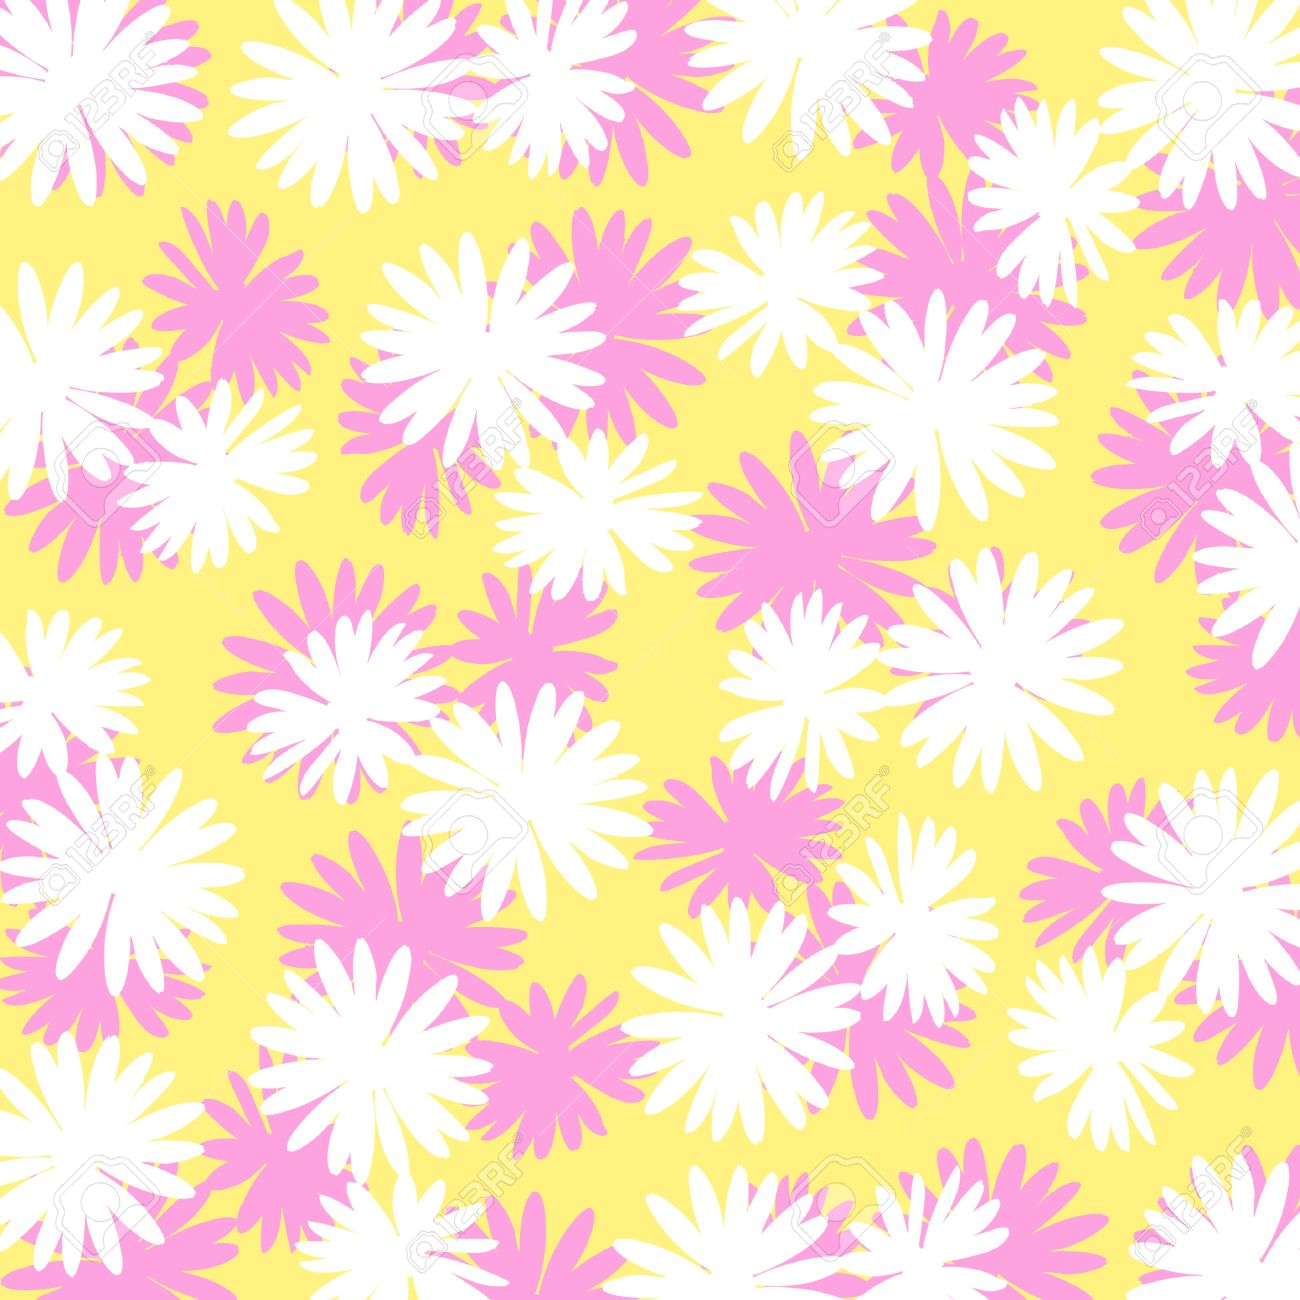 Pink and white flowers over light yellow background stock photo pink and white flowers over light yellow background stock photo 17508645 mightylinksfo